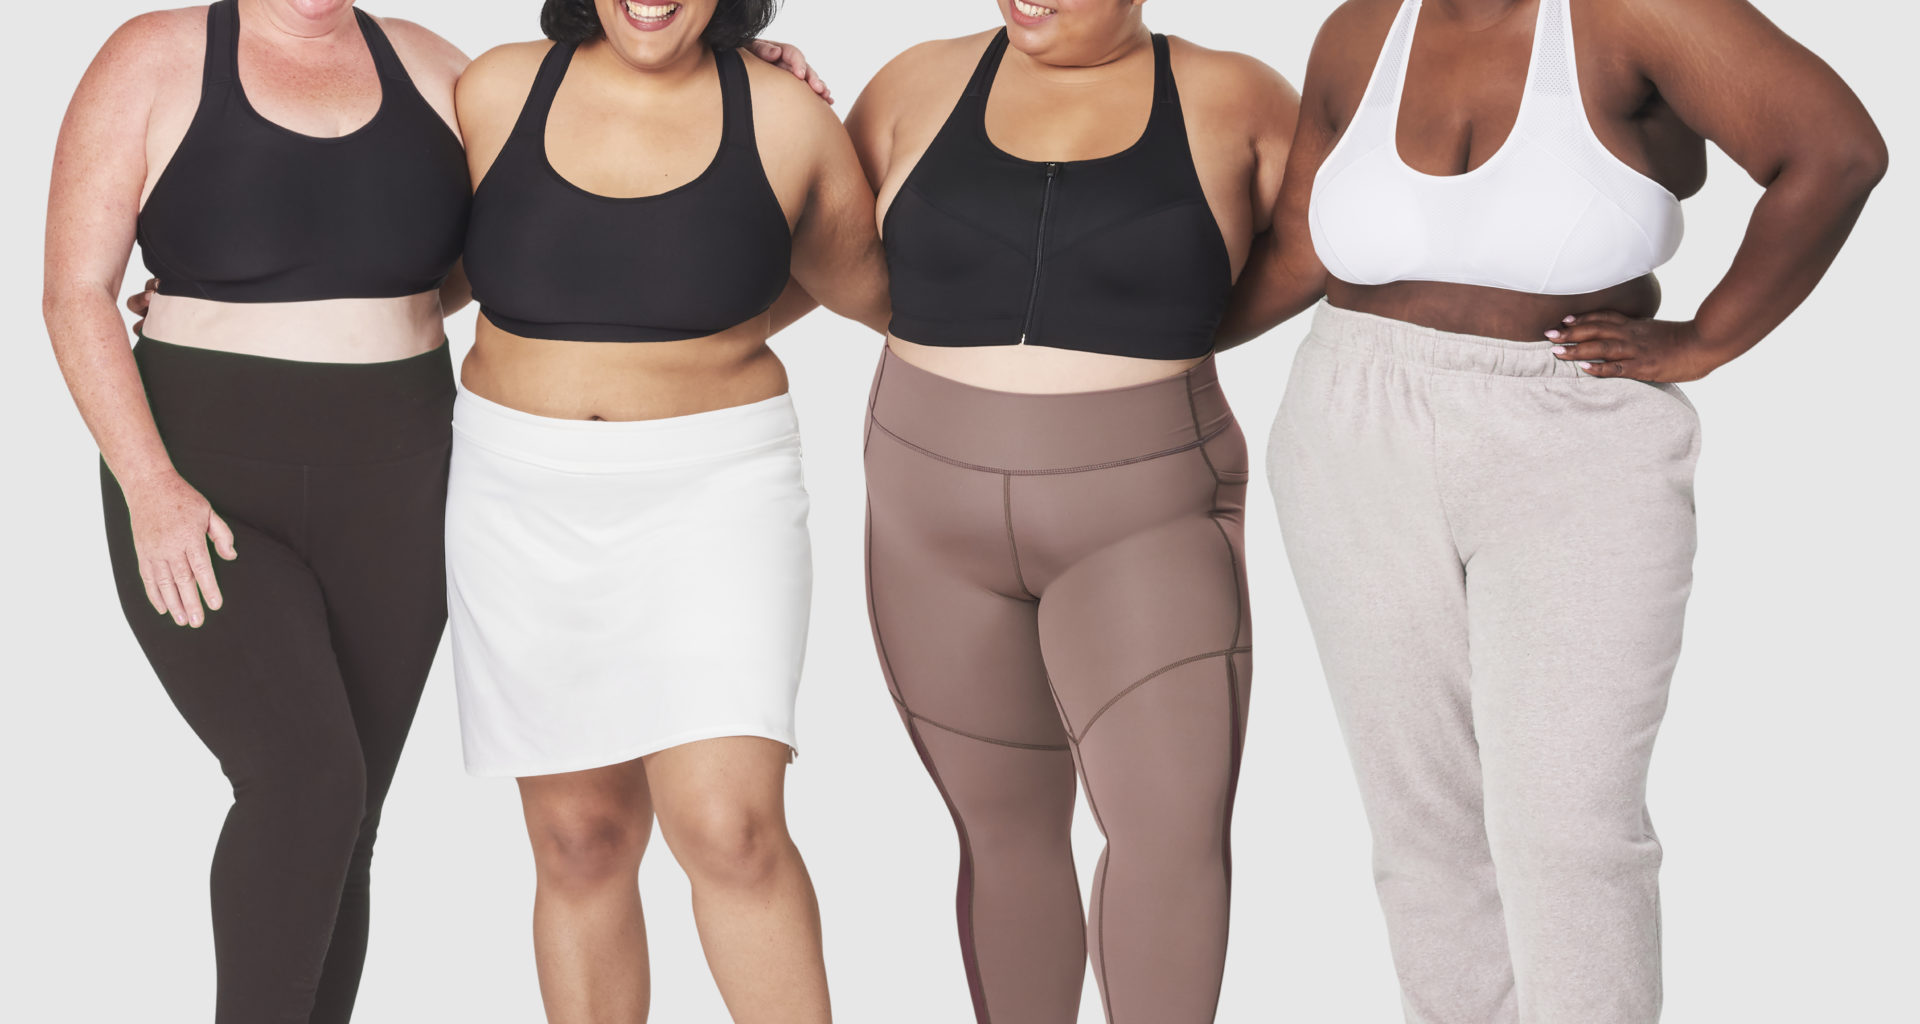 The Best Bra For Fat Women - Tips to Help You Find the Best Bras